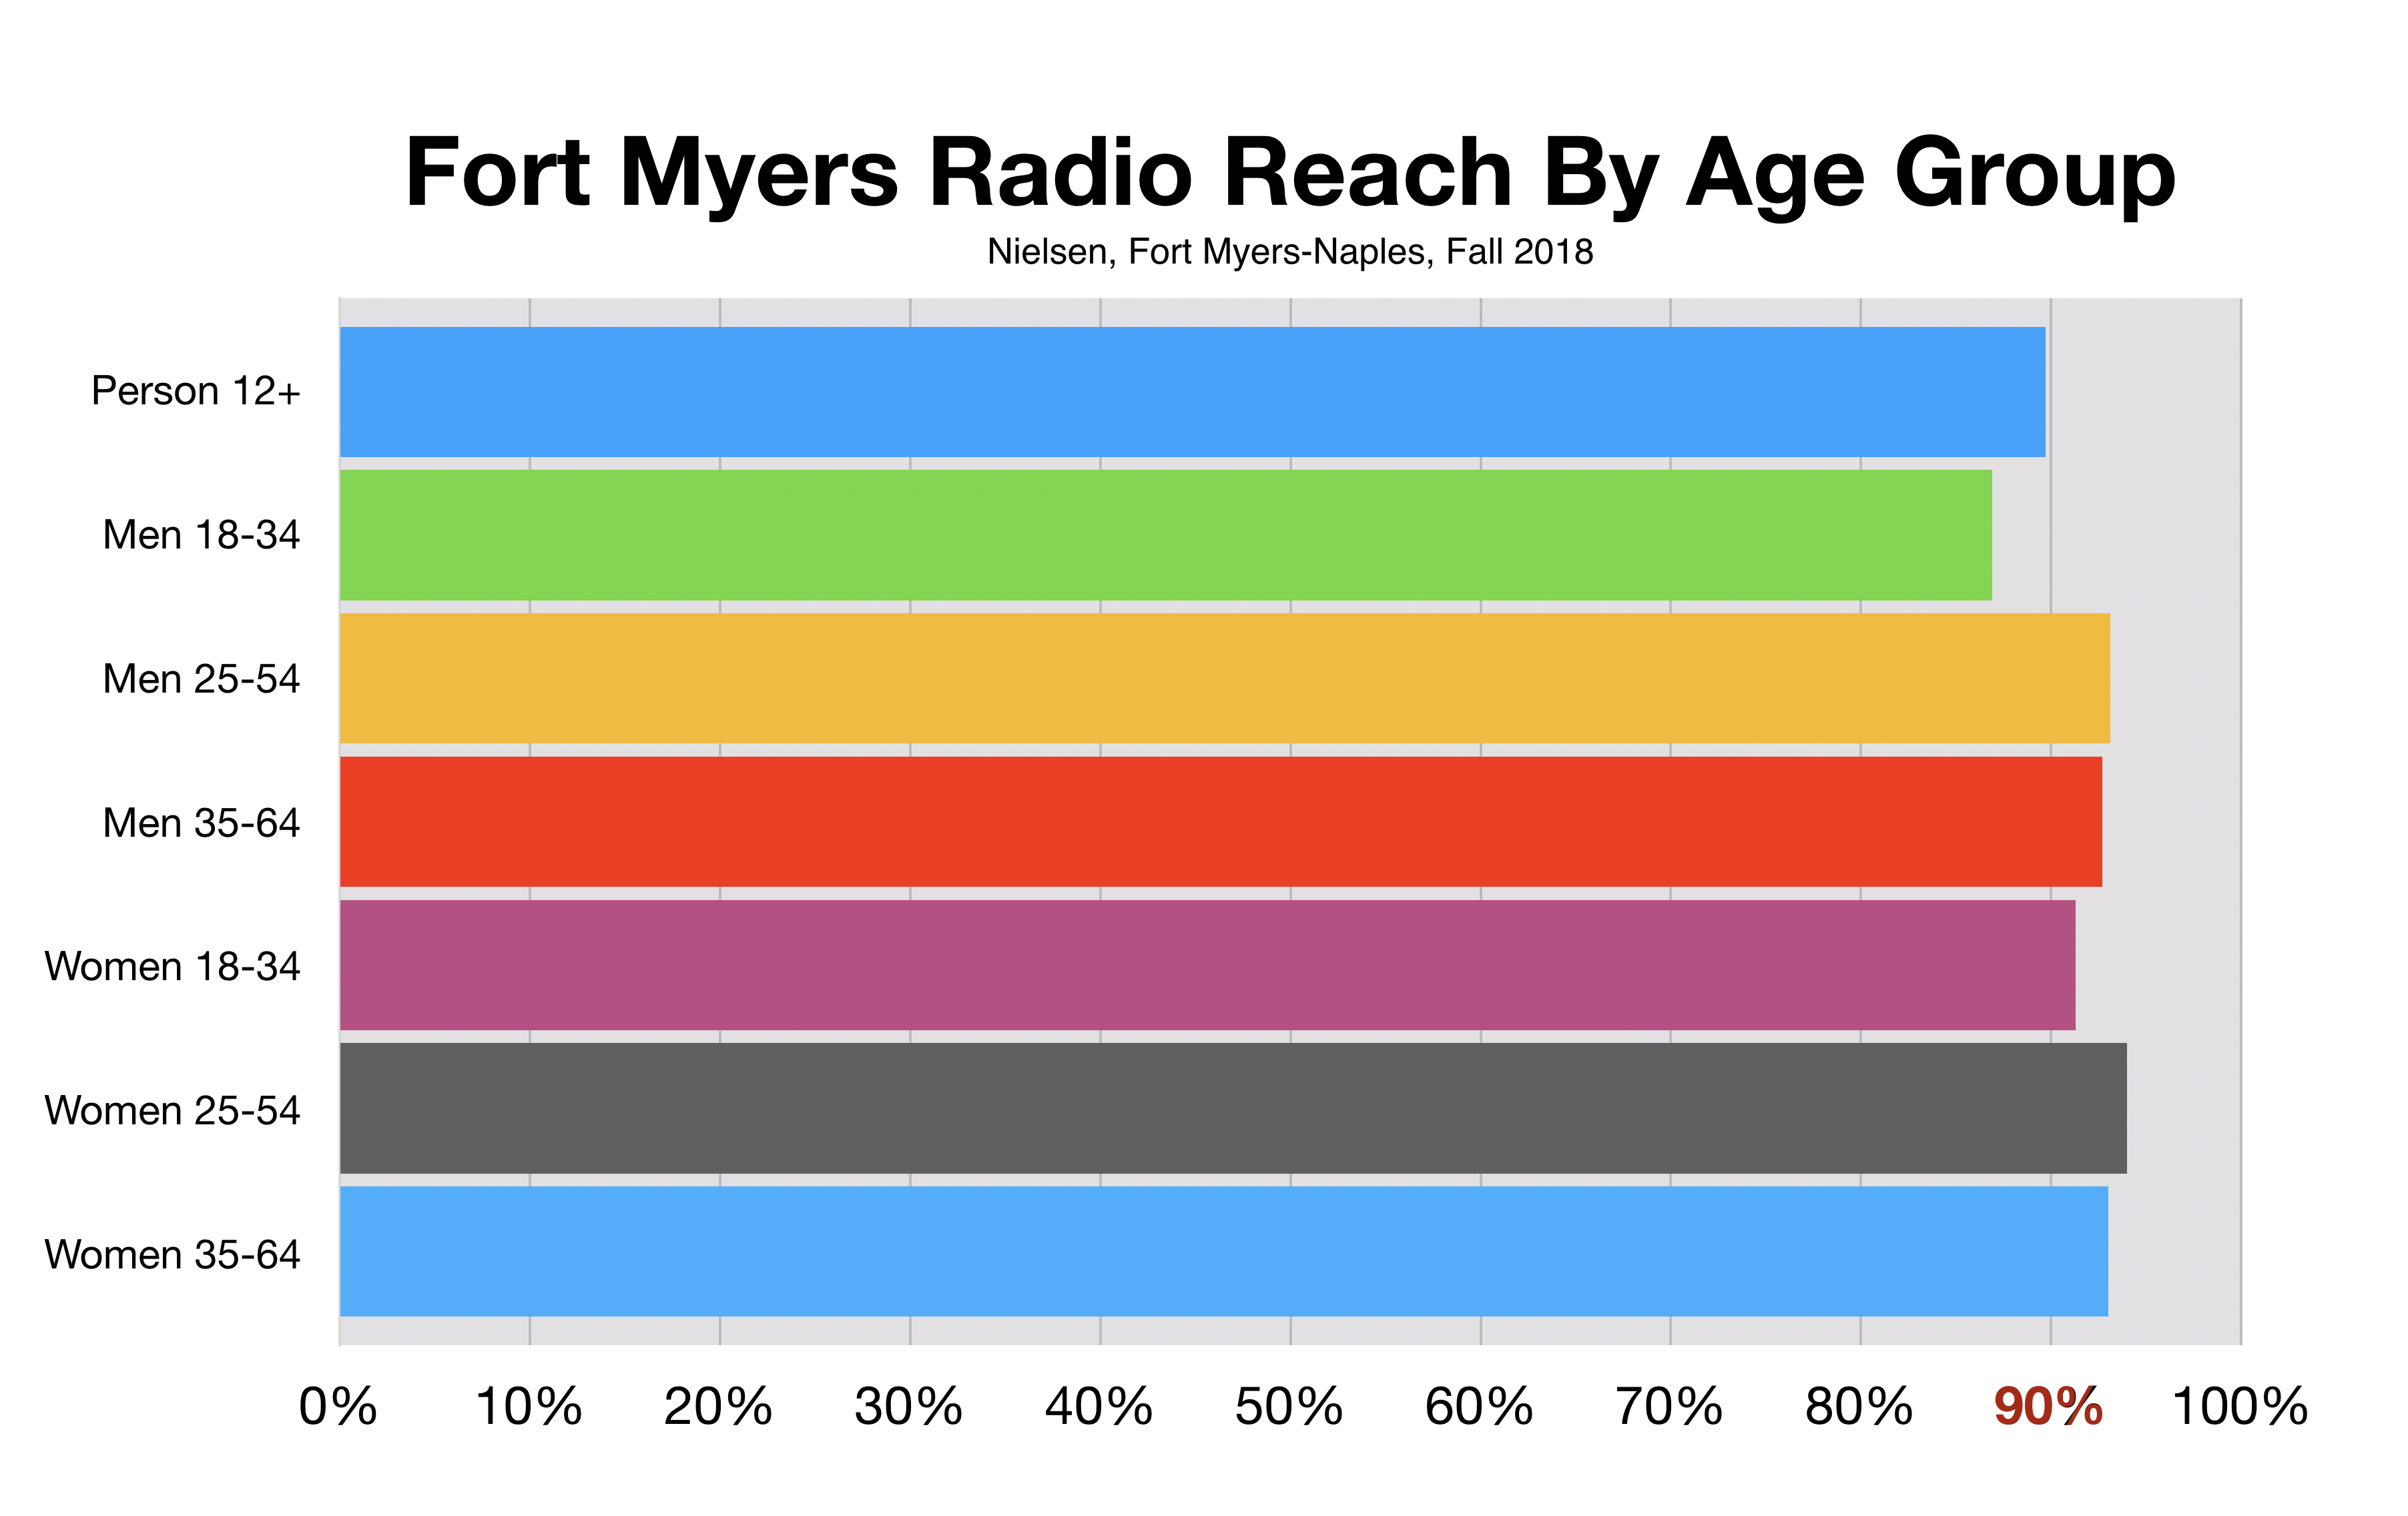 https://advertiseinfortmyers.com/radio/ftm/